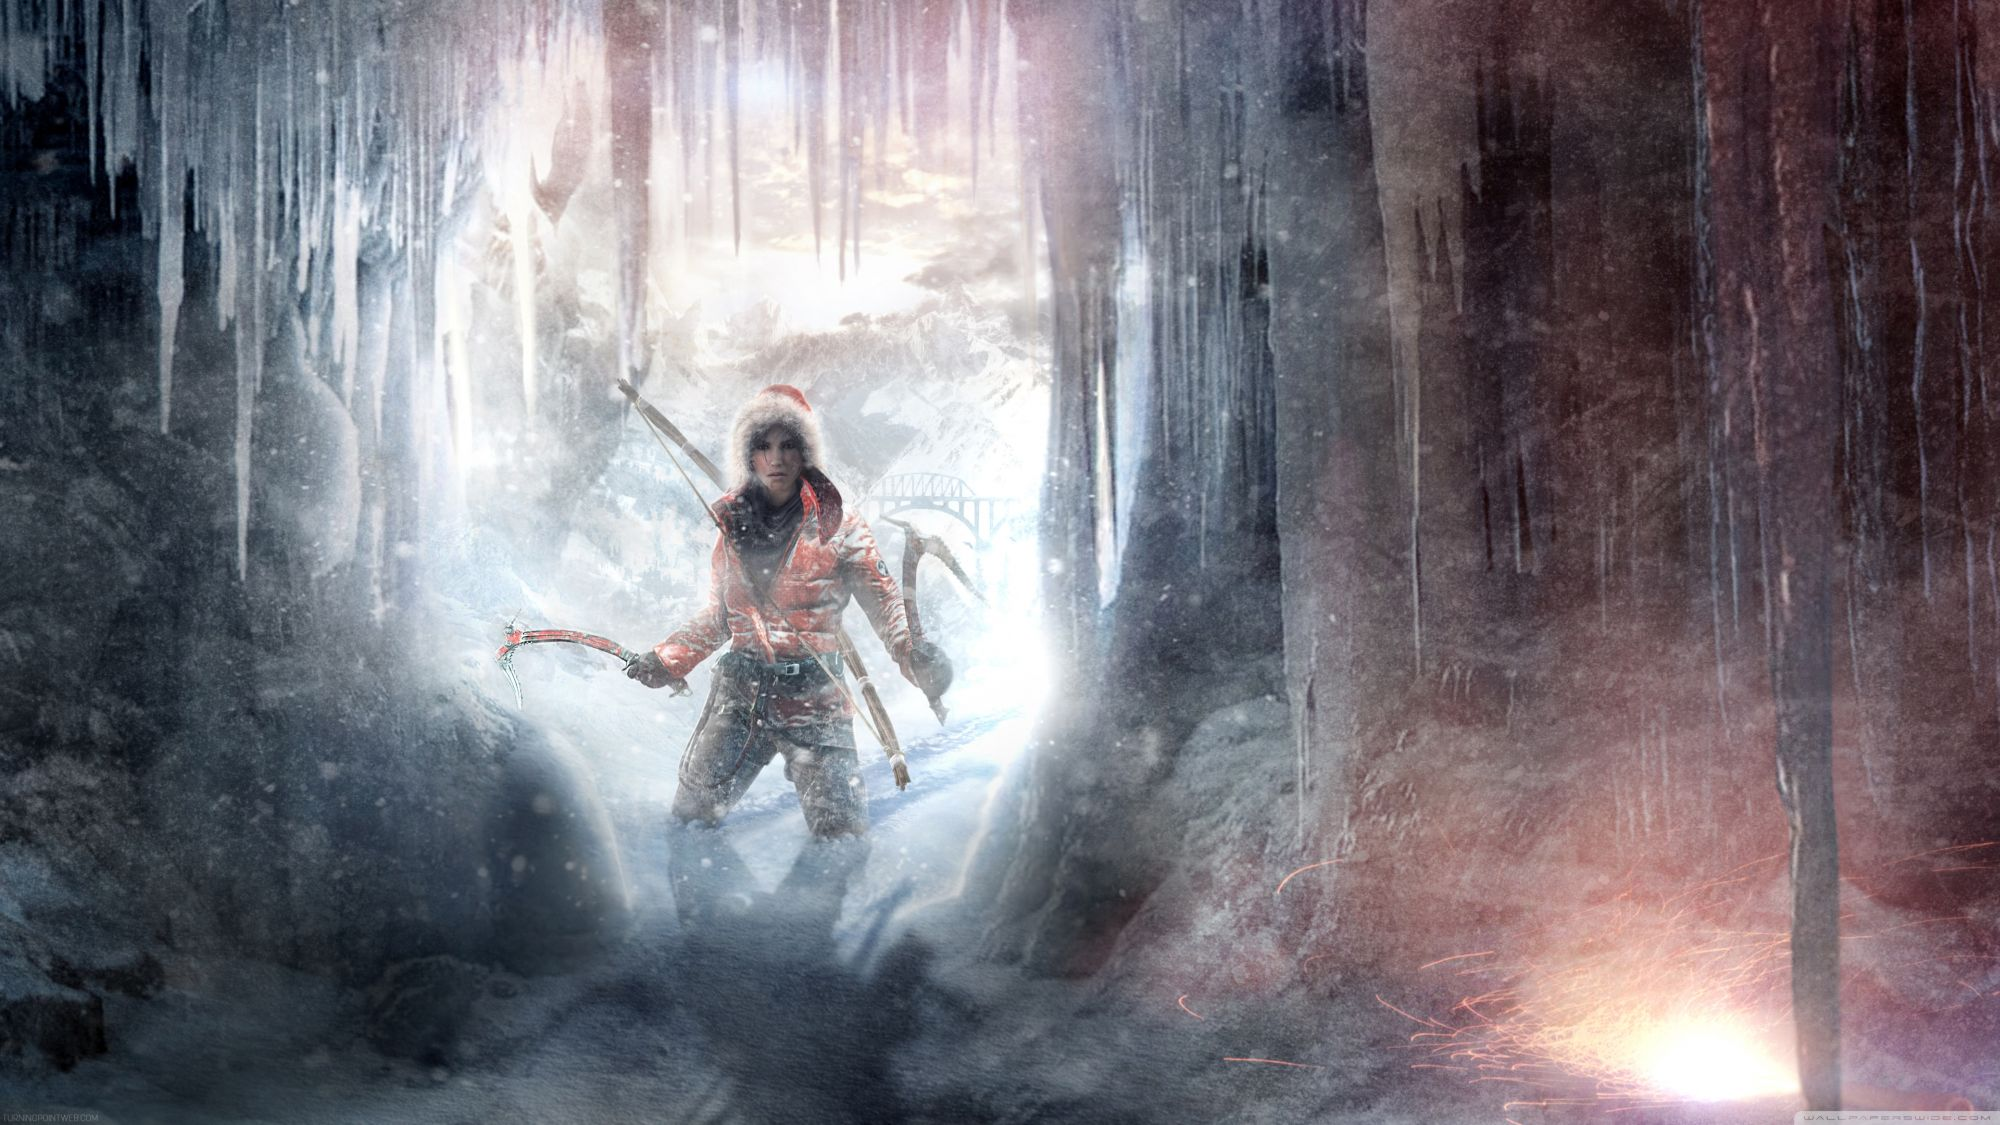 rise-of-the-tomb-raider-wallpaper-free-Is-Cool-Wallpapers